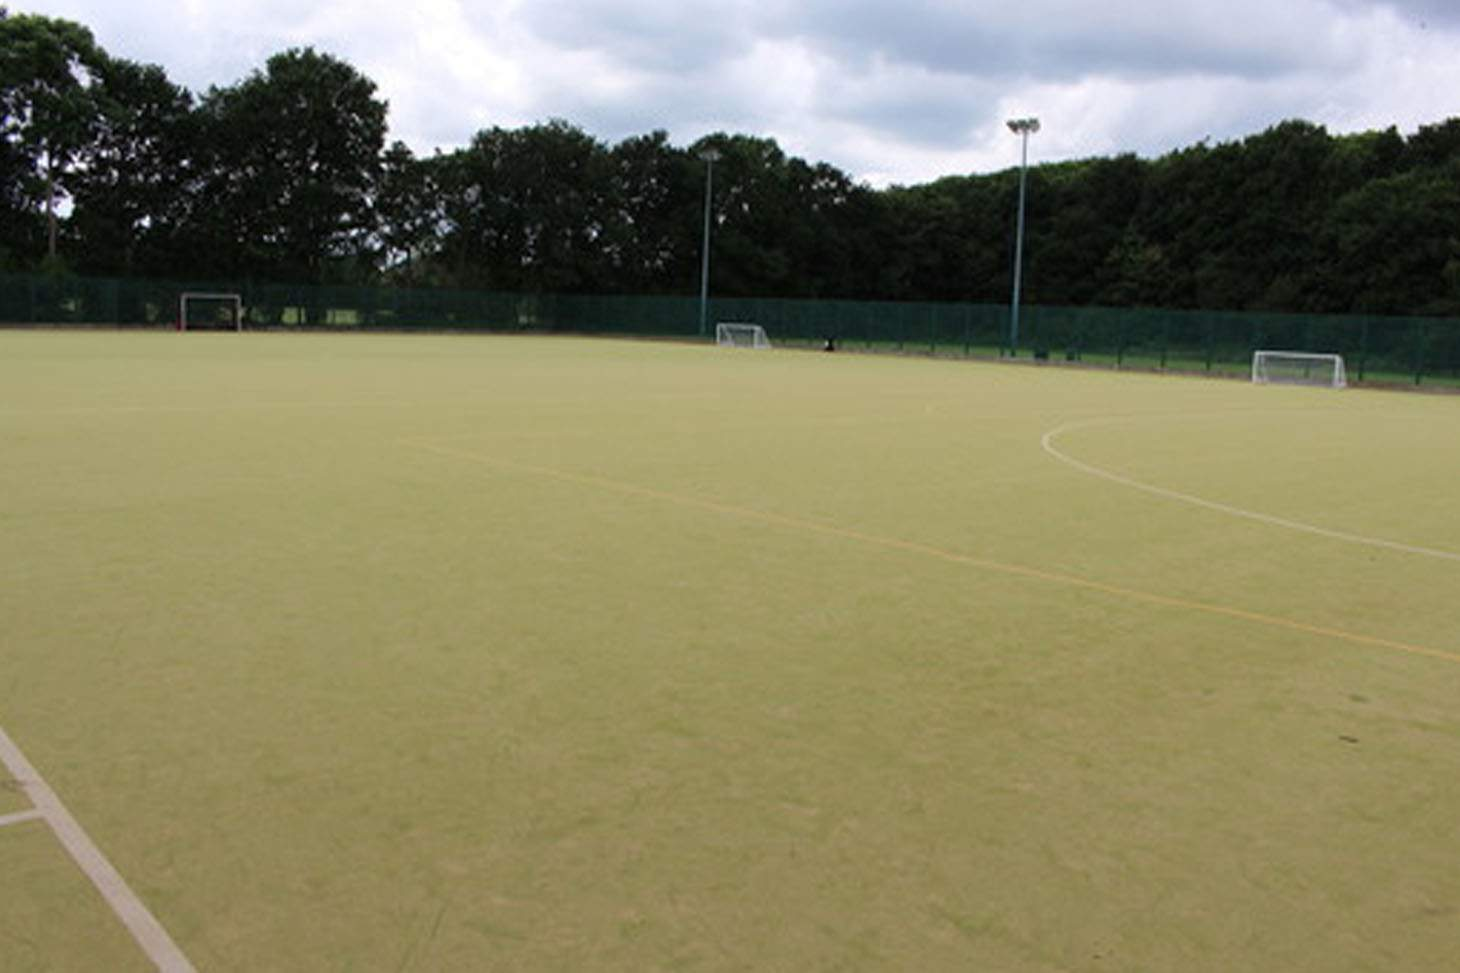 Light Hall School 5 a side | Astroturf football pitch